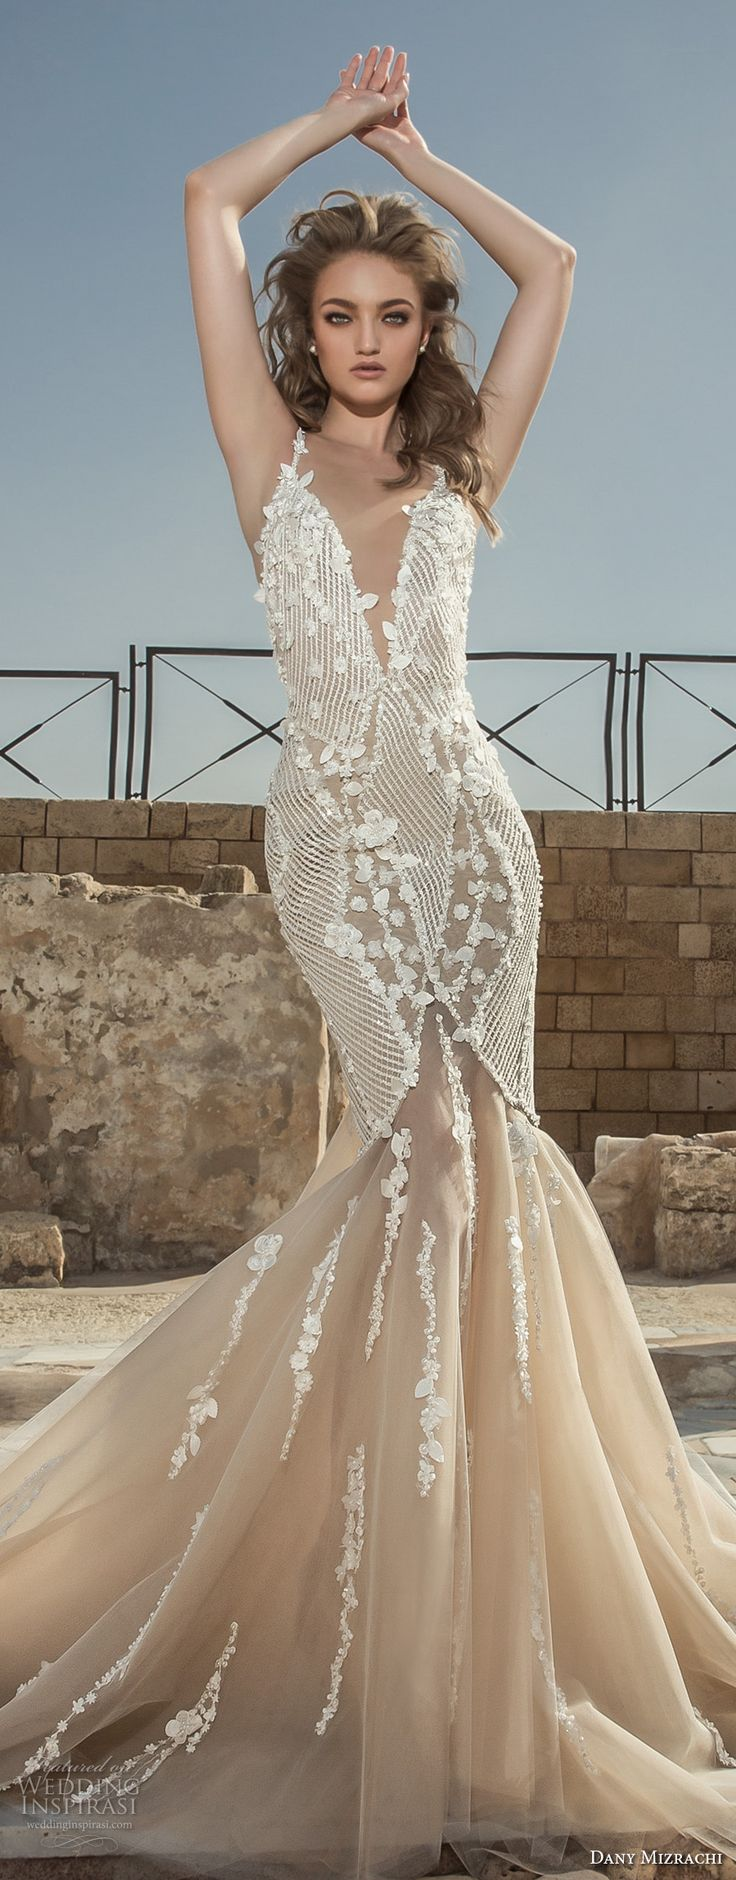 Mermaid Wedding Dresses Ottawa : Best champagne colored wedding dresses ideas that you